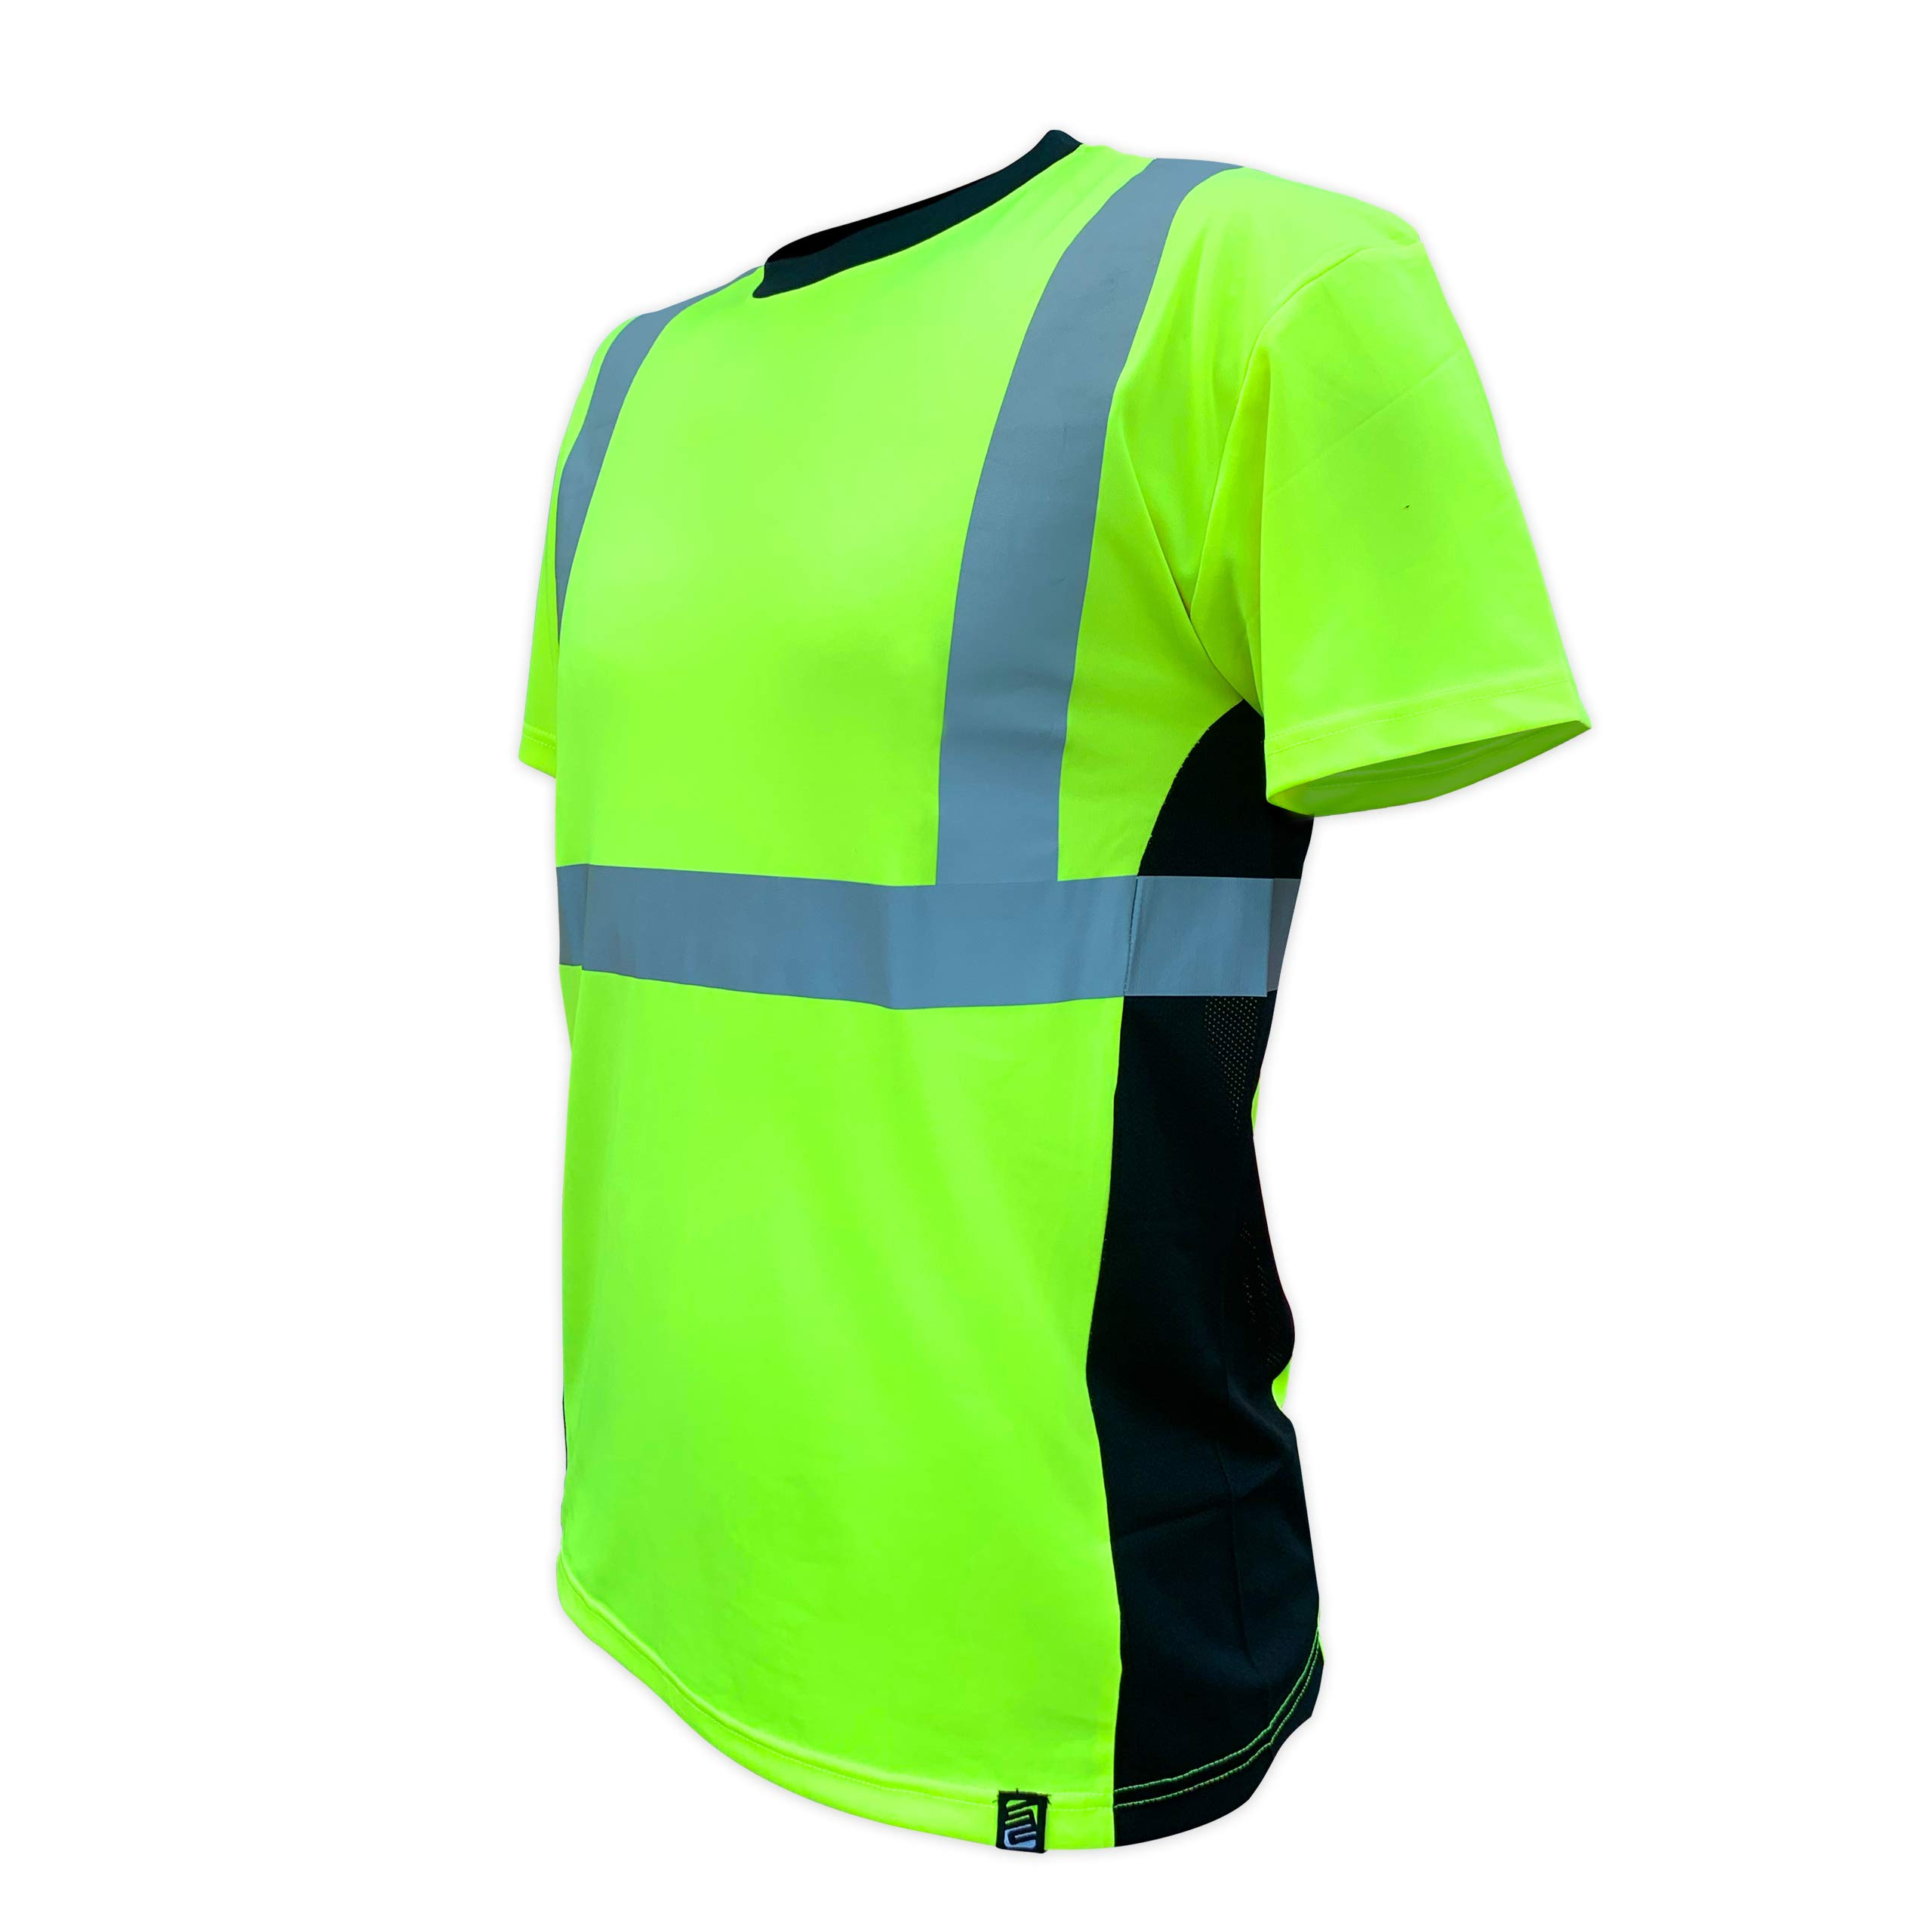 SafetyShirtz SS360 ANSI Class 2 Safety Tee Yellow (Safety Green) w/Vented Sides 4XL by SafetyShirtz